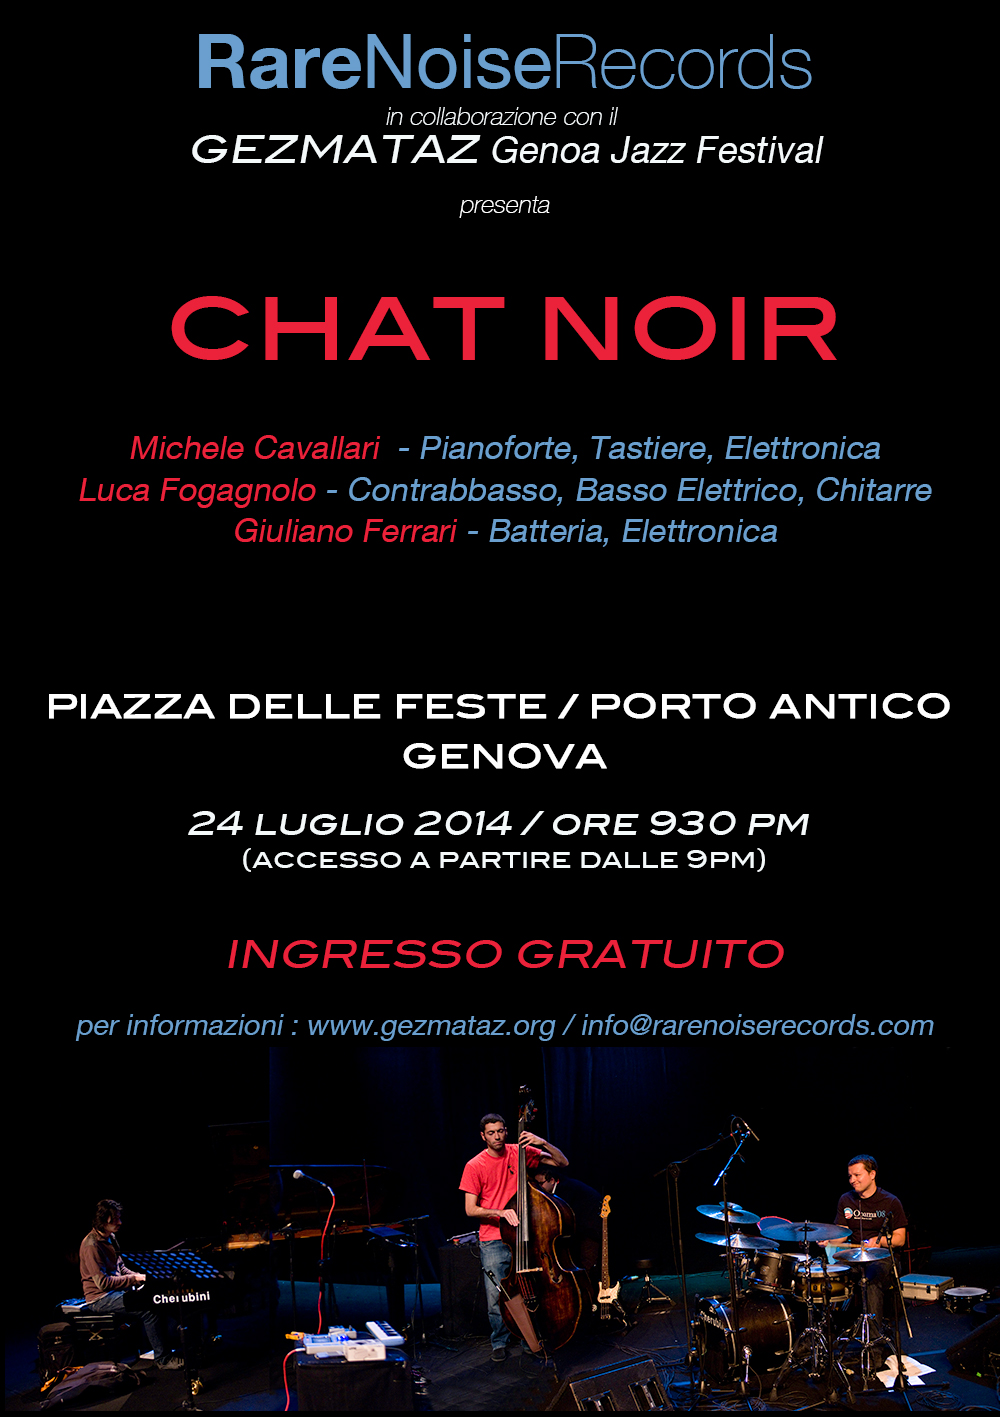 Chat Noir play the Gezmataz Festival in Genoa on July 24th 1